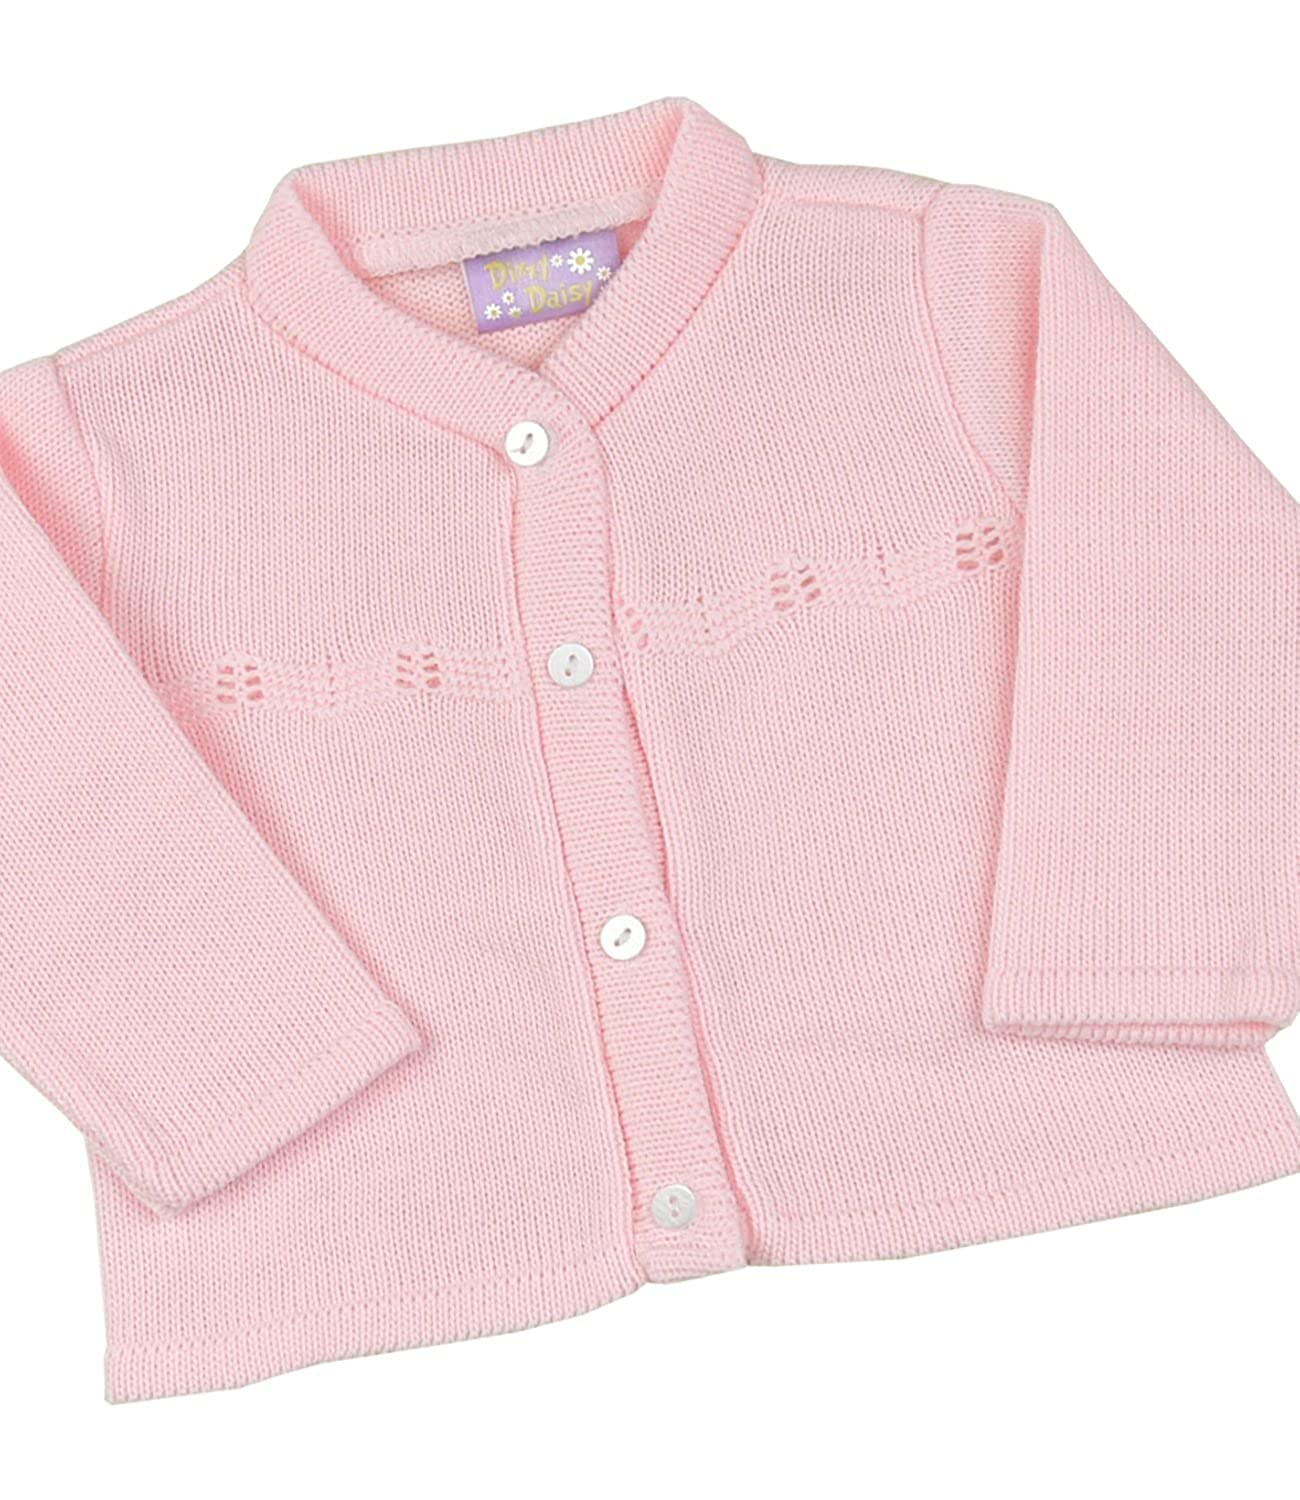 Babyprem Baby Cardigan Jacket Girl Pink Classic Soft Knitted 0-12 Months BEE032